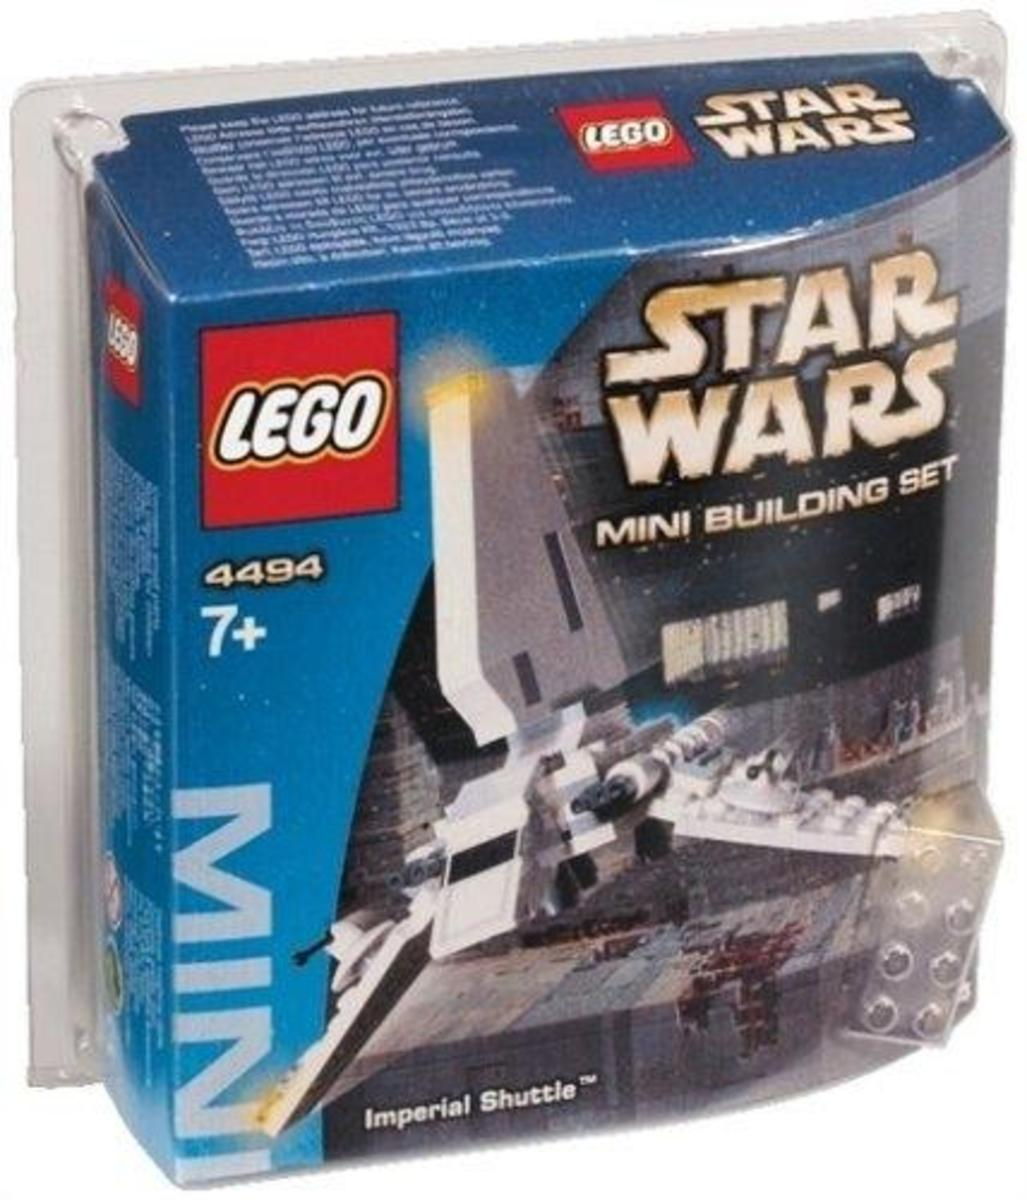 LEGO Star Wars Imperial Shuttle 4494 Box